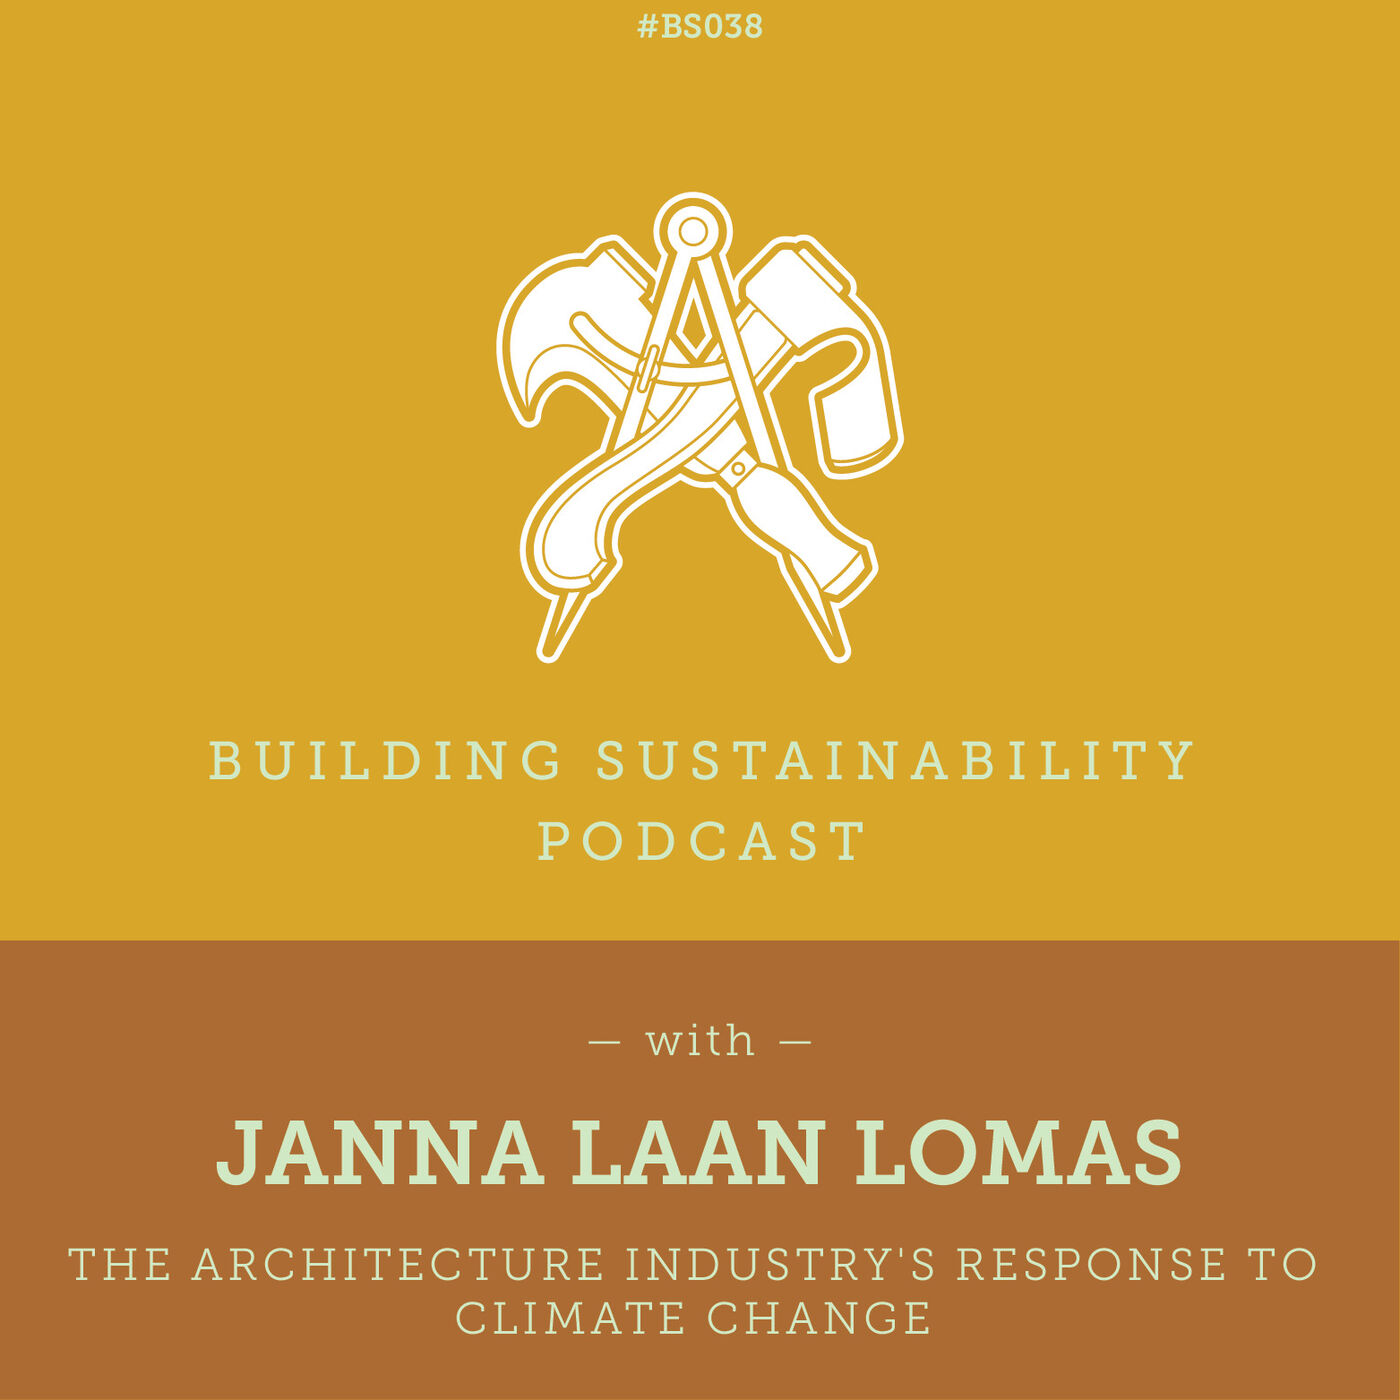 How will architects respond to climate change? - Janna Laan Lomas